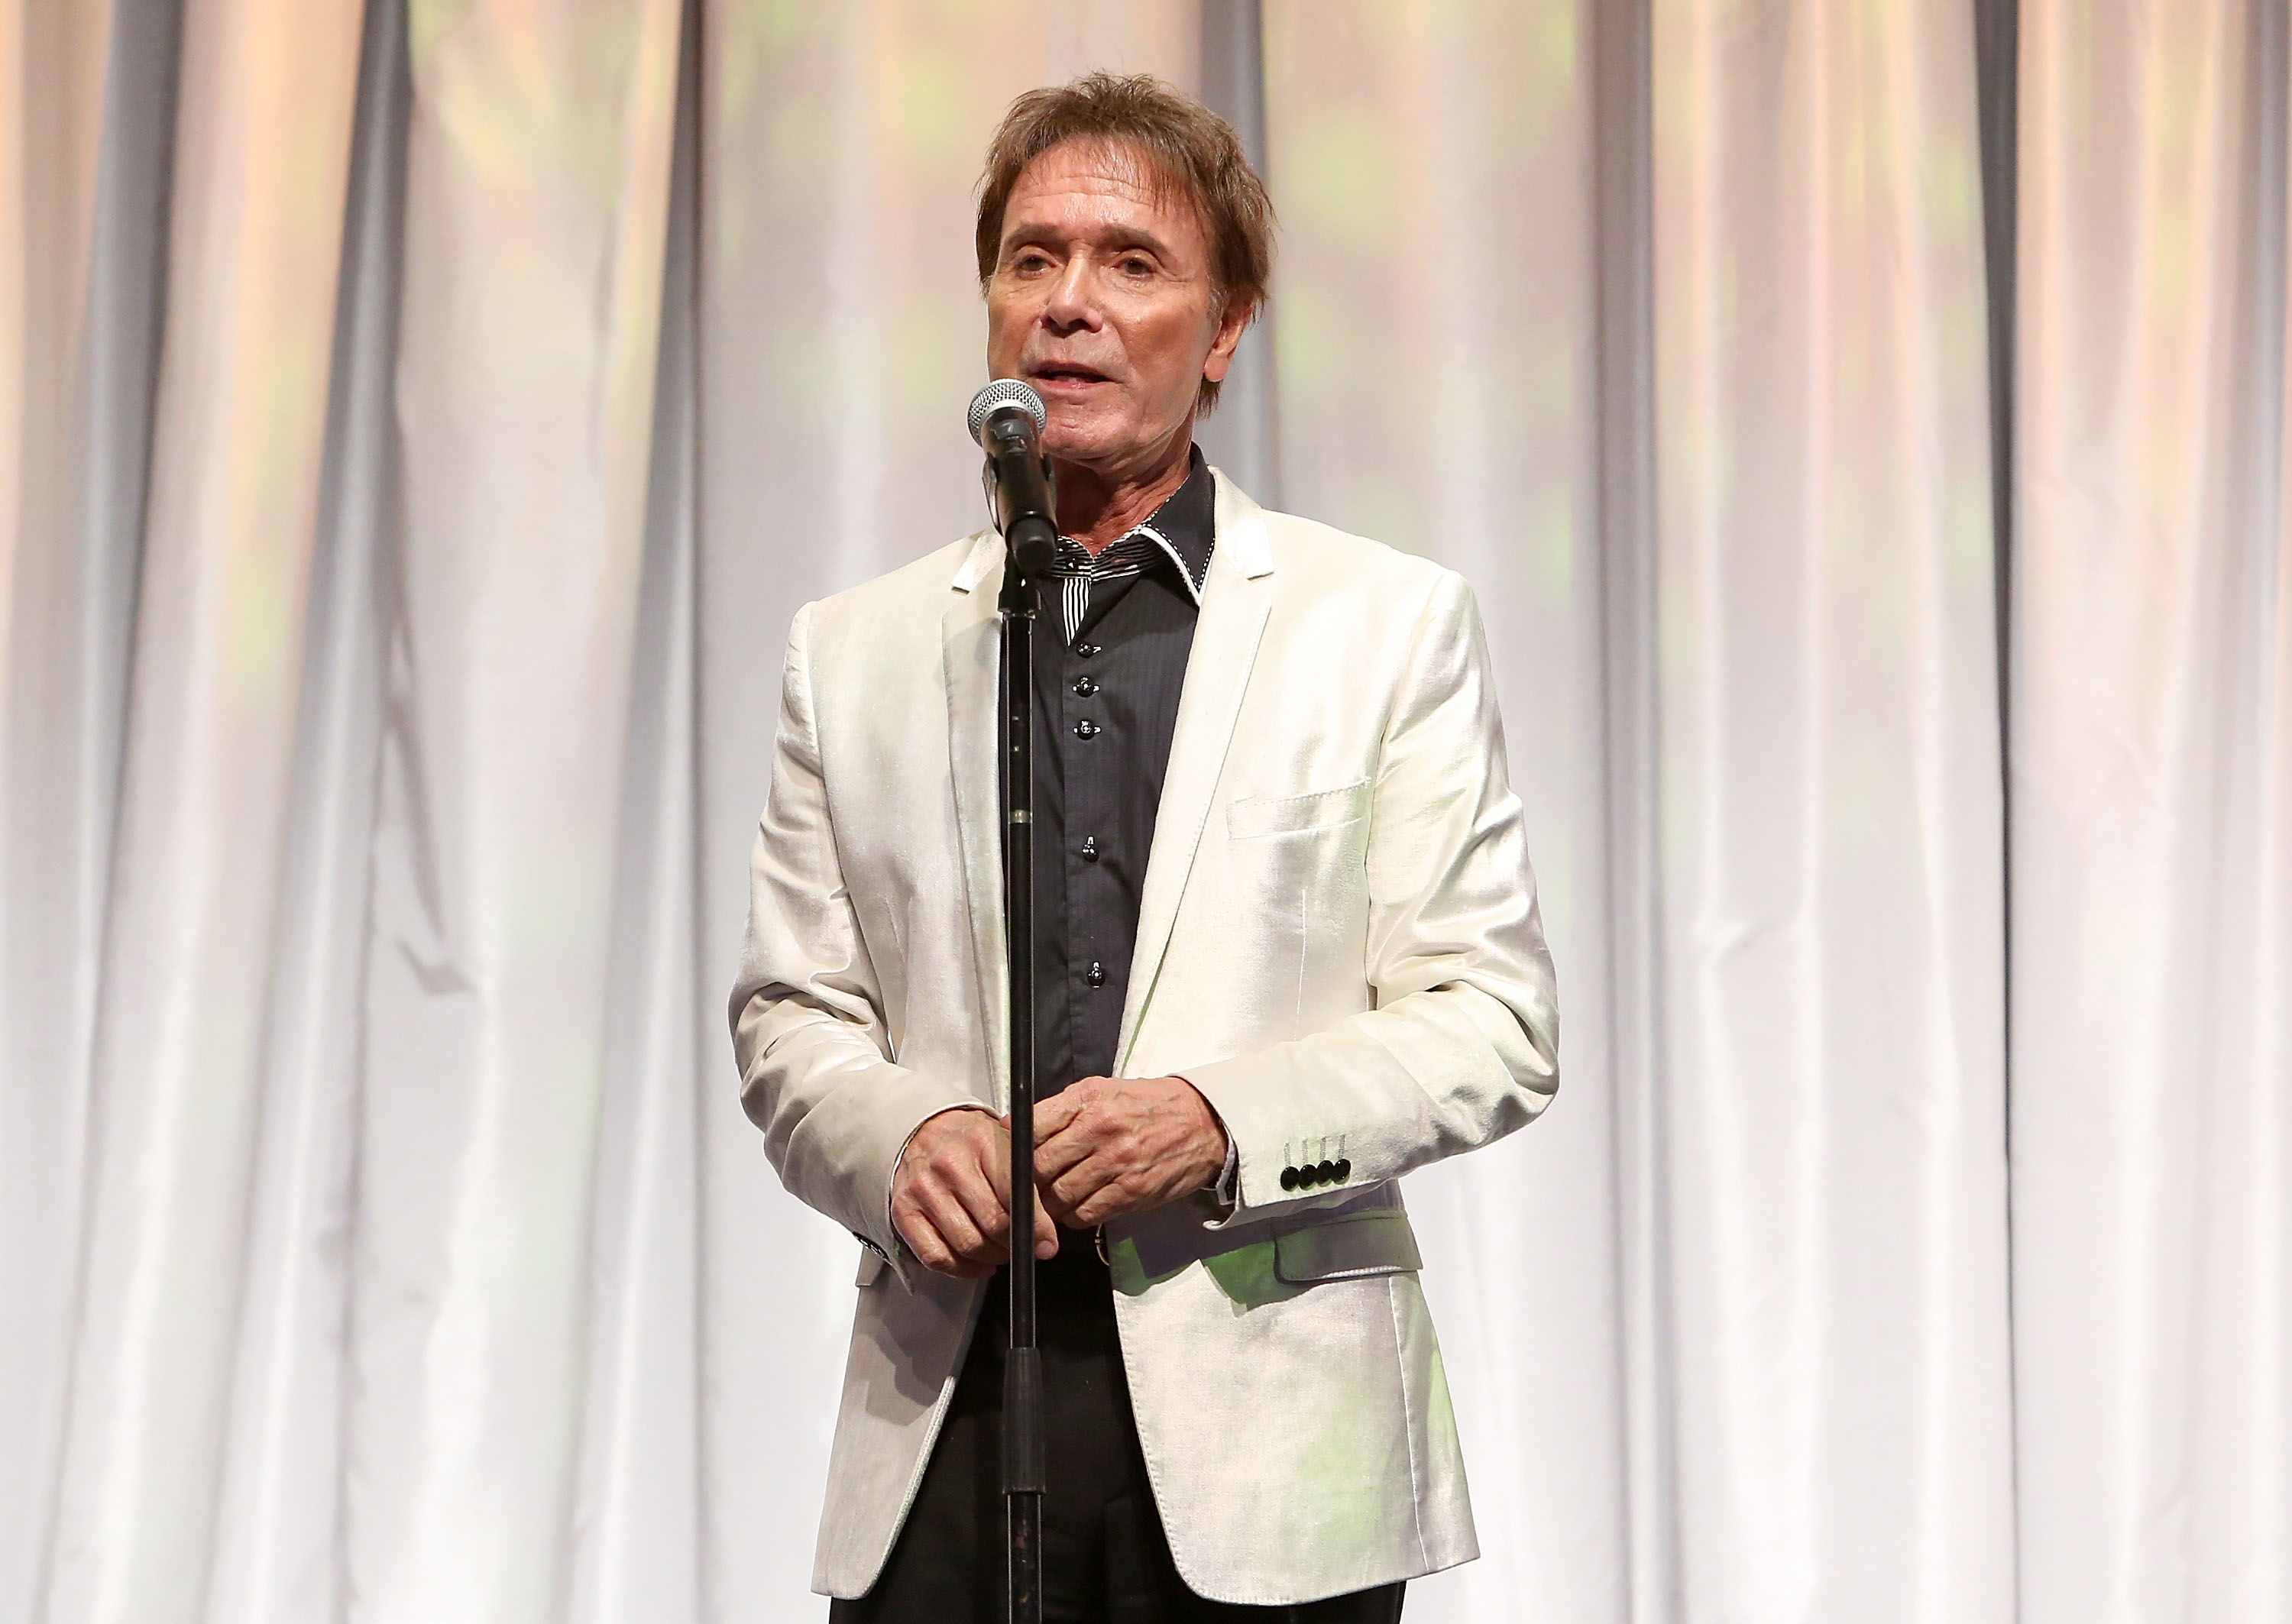 Singer Cliff Richard performs during the Dream Foundation's 2017 Dreamland Gala at The Ritz-Carlton Bacara on November 18, 2017 in Goleta, California. (Photo by Jesse Grant/Getty Images for Dream Foundation)